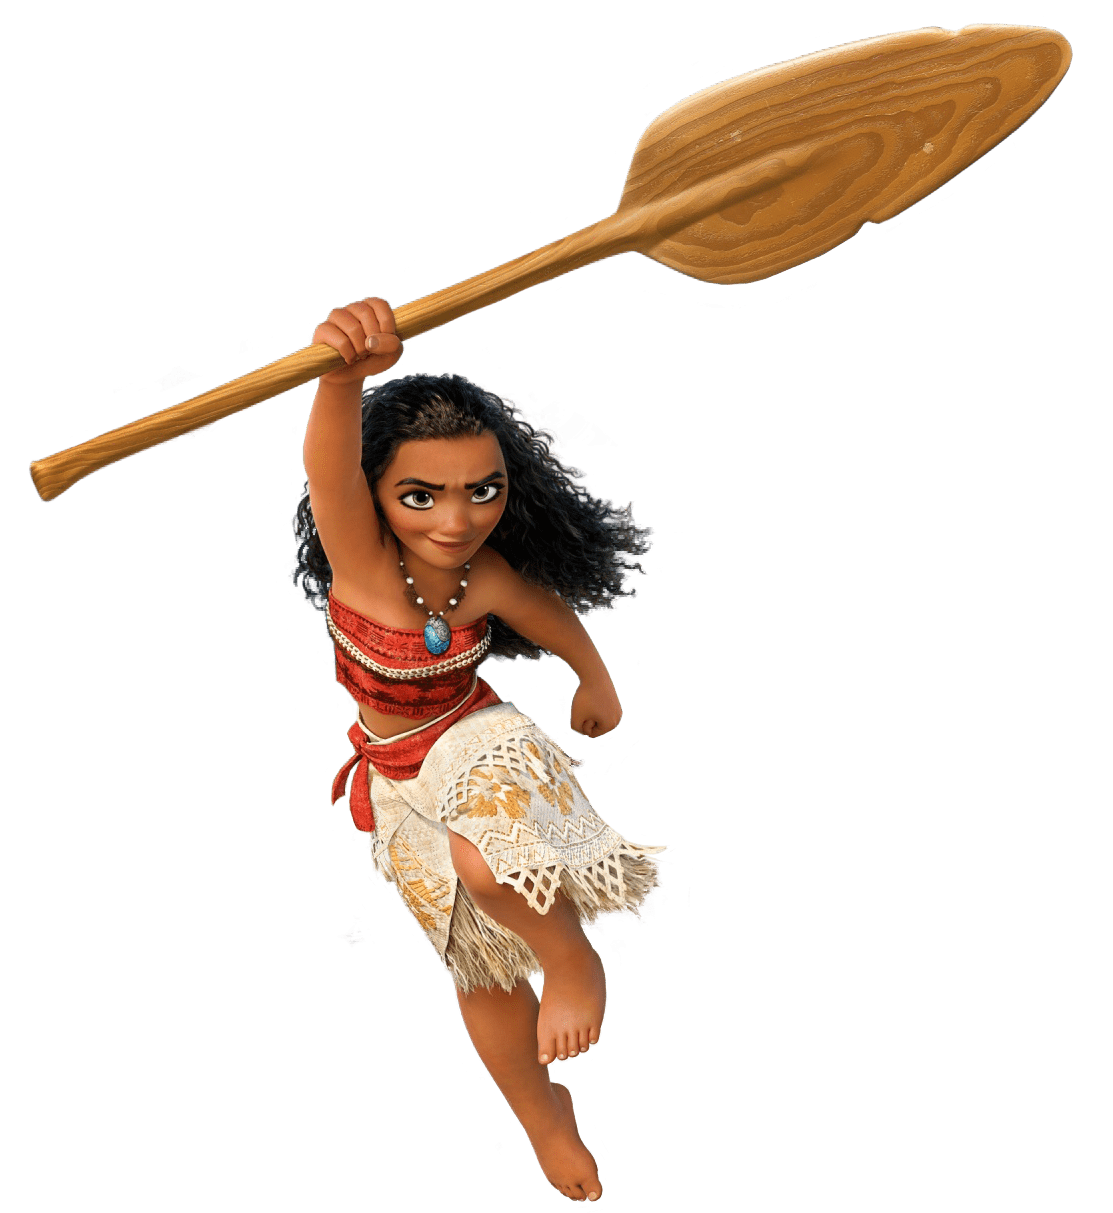 Moana clipart transparent background. Jump png stickpng download